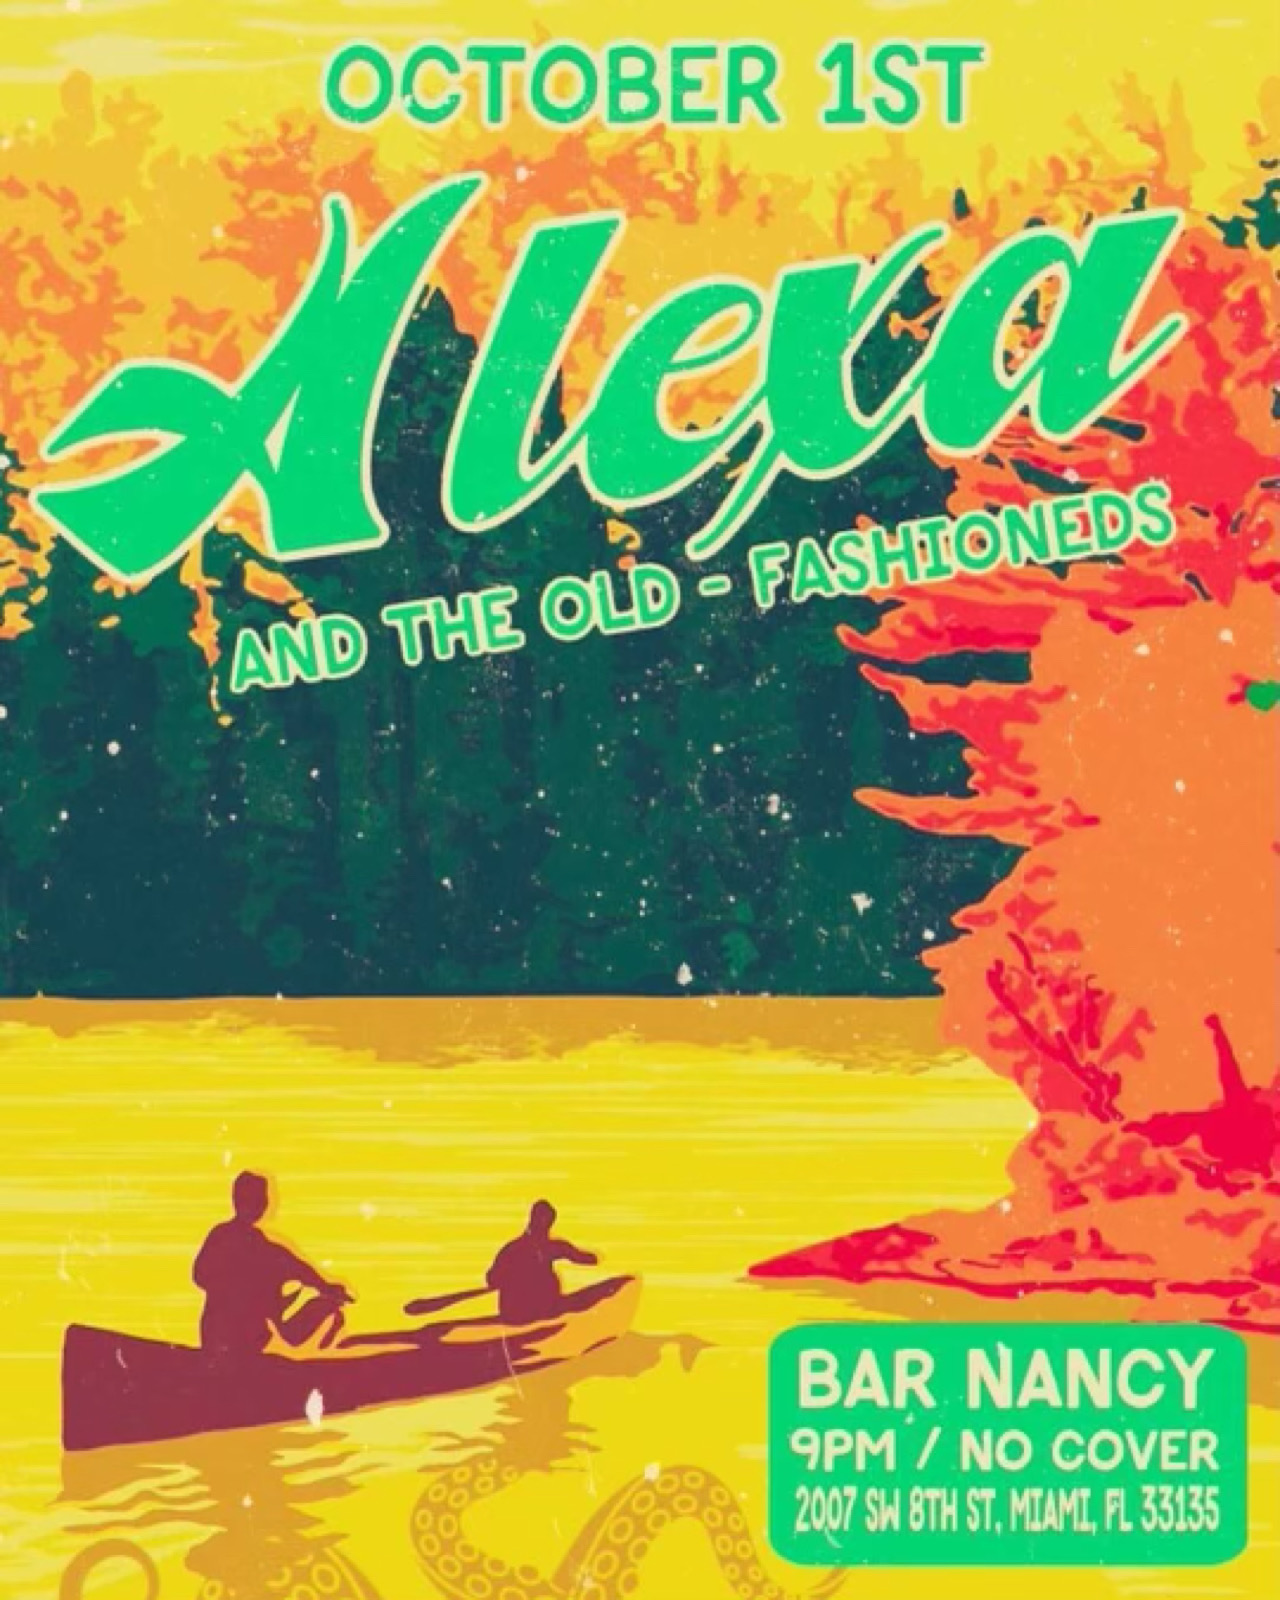 Alexa and The Old-Fashioneds at Bar Nancy - October 1st at 9PM